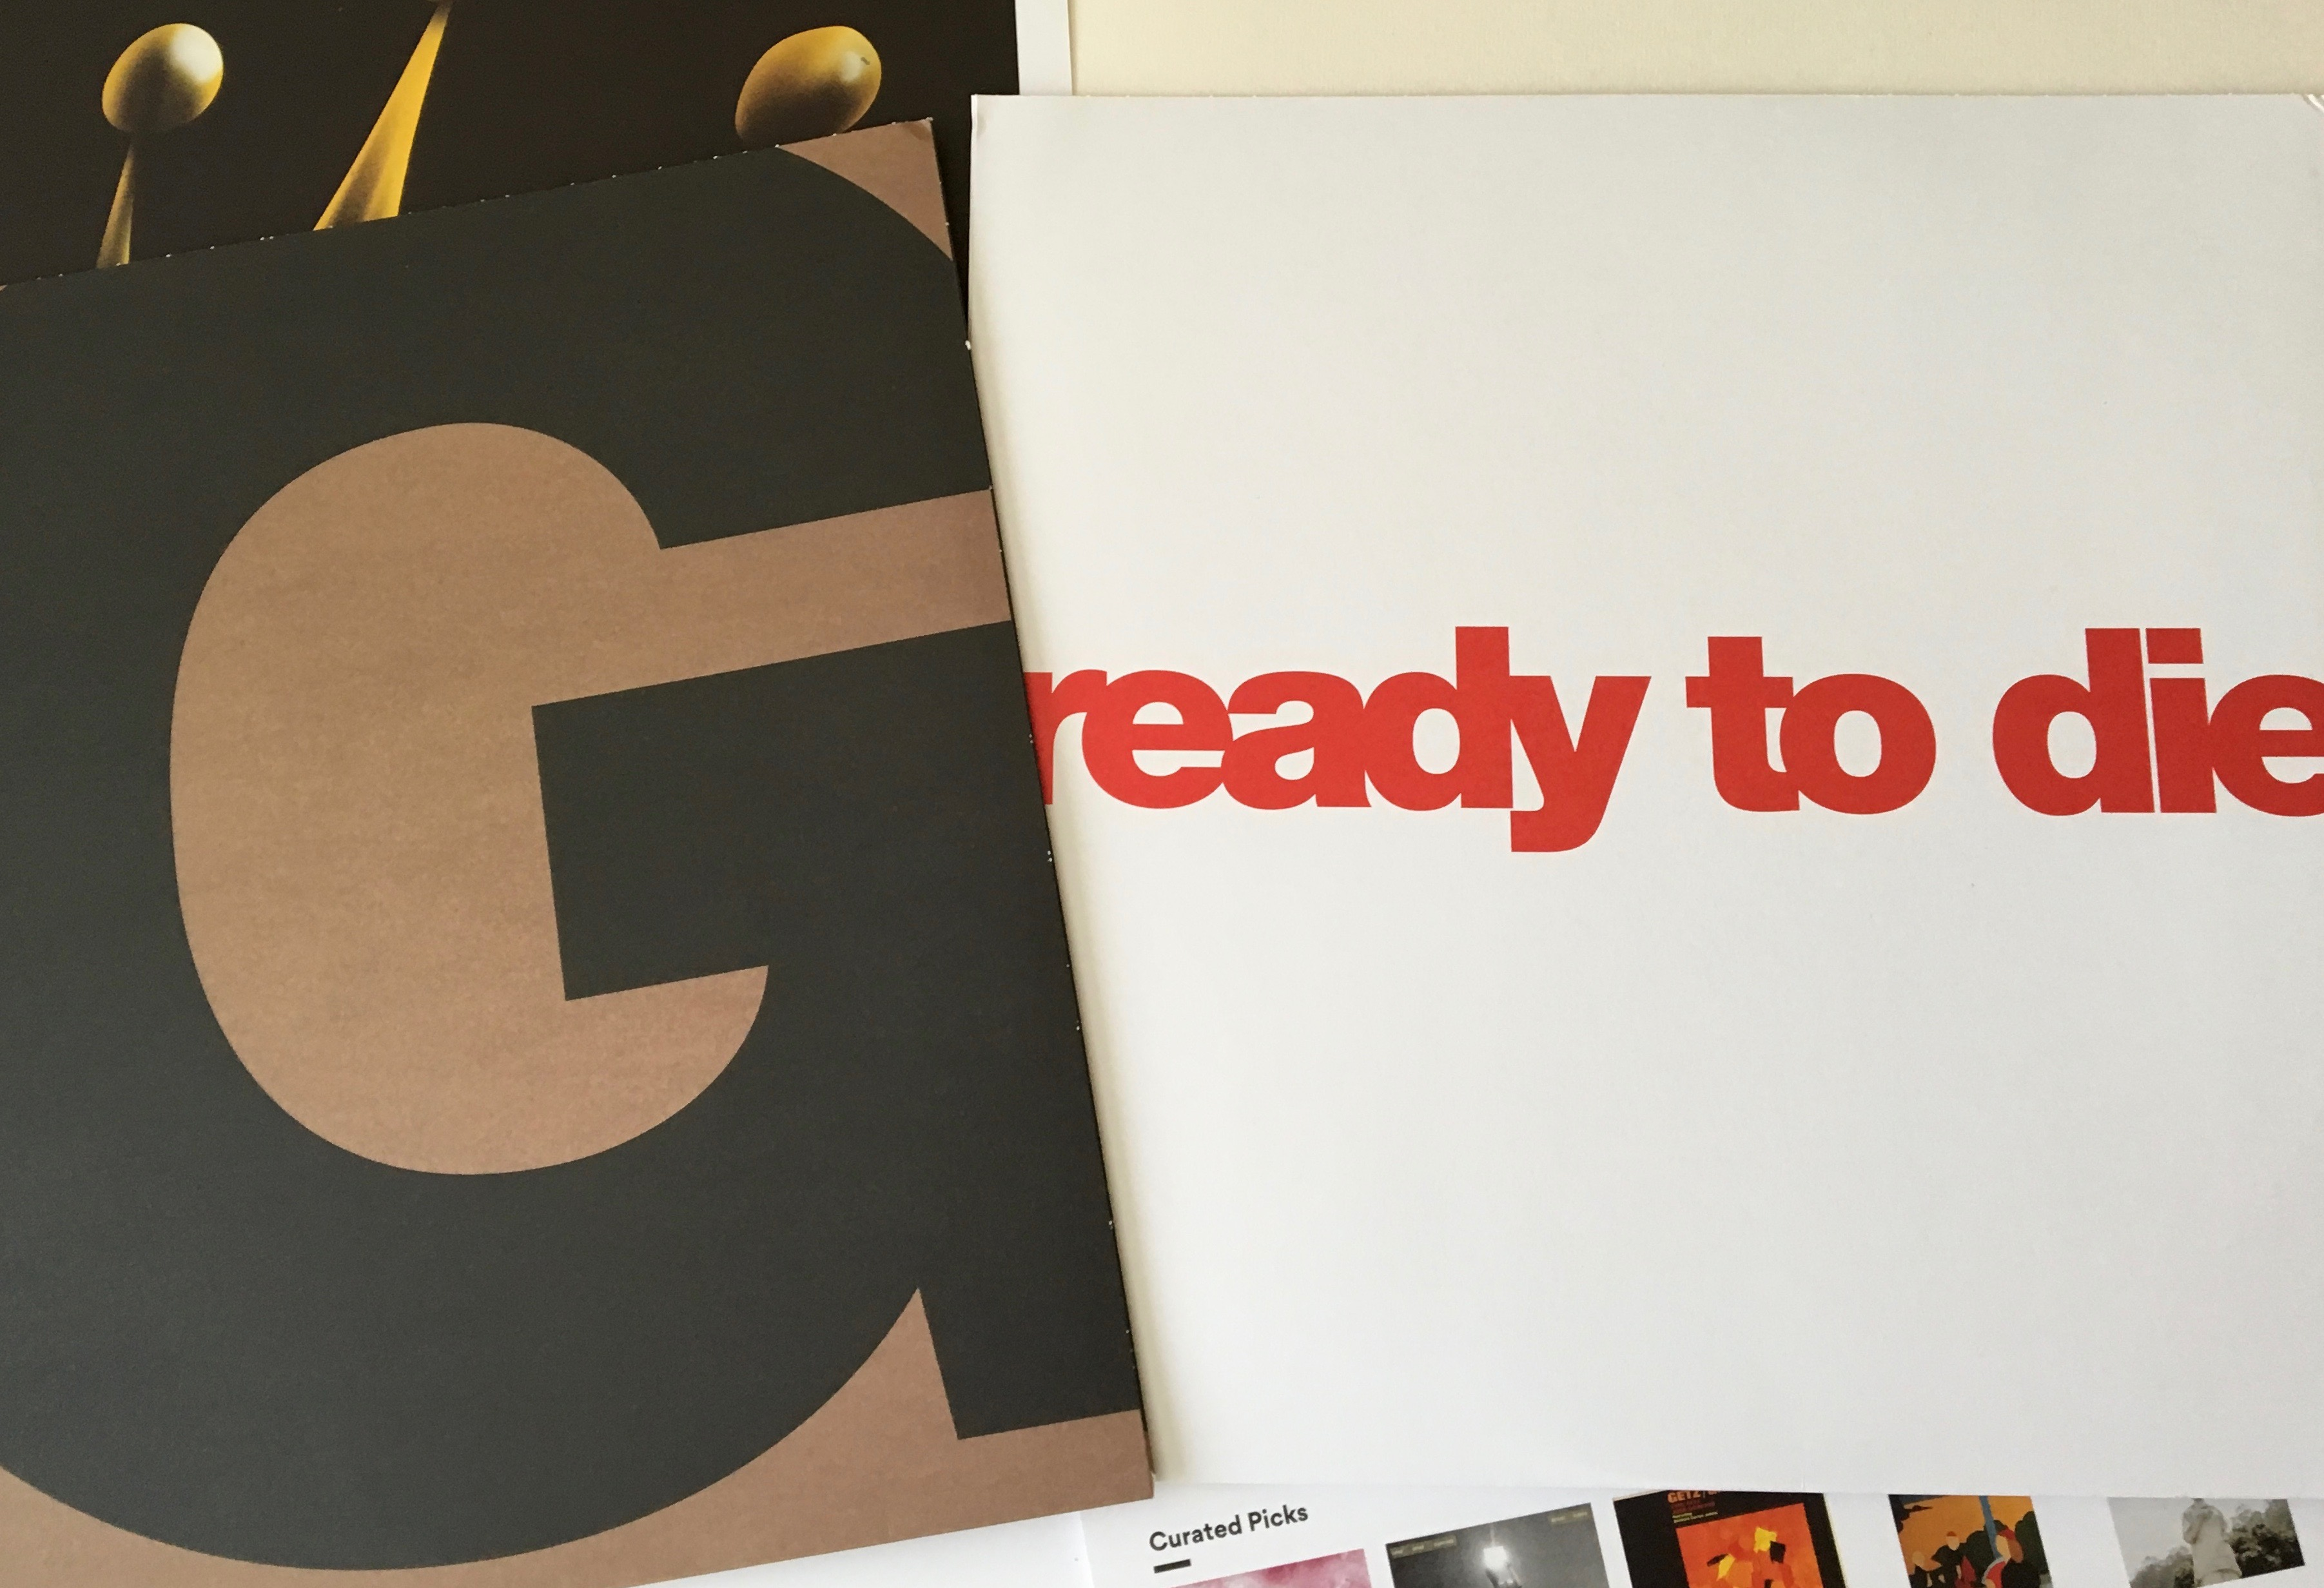 Geek insider, geekinsider, geekinsider. Com,, vinyl me, please september edition: the notorious b. I. G. 'ready to die', culture, events